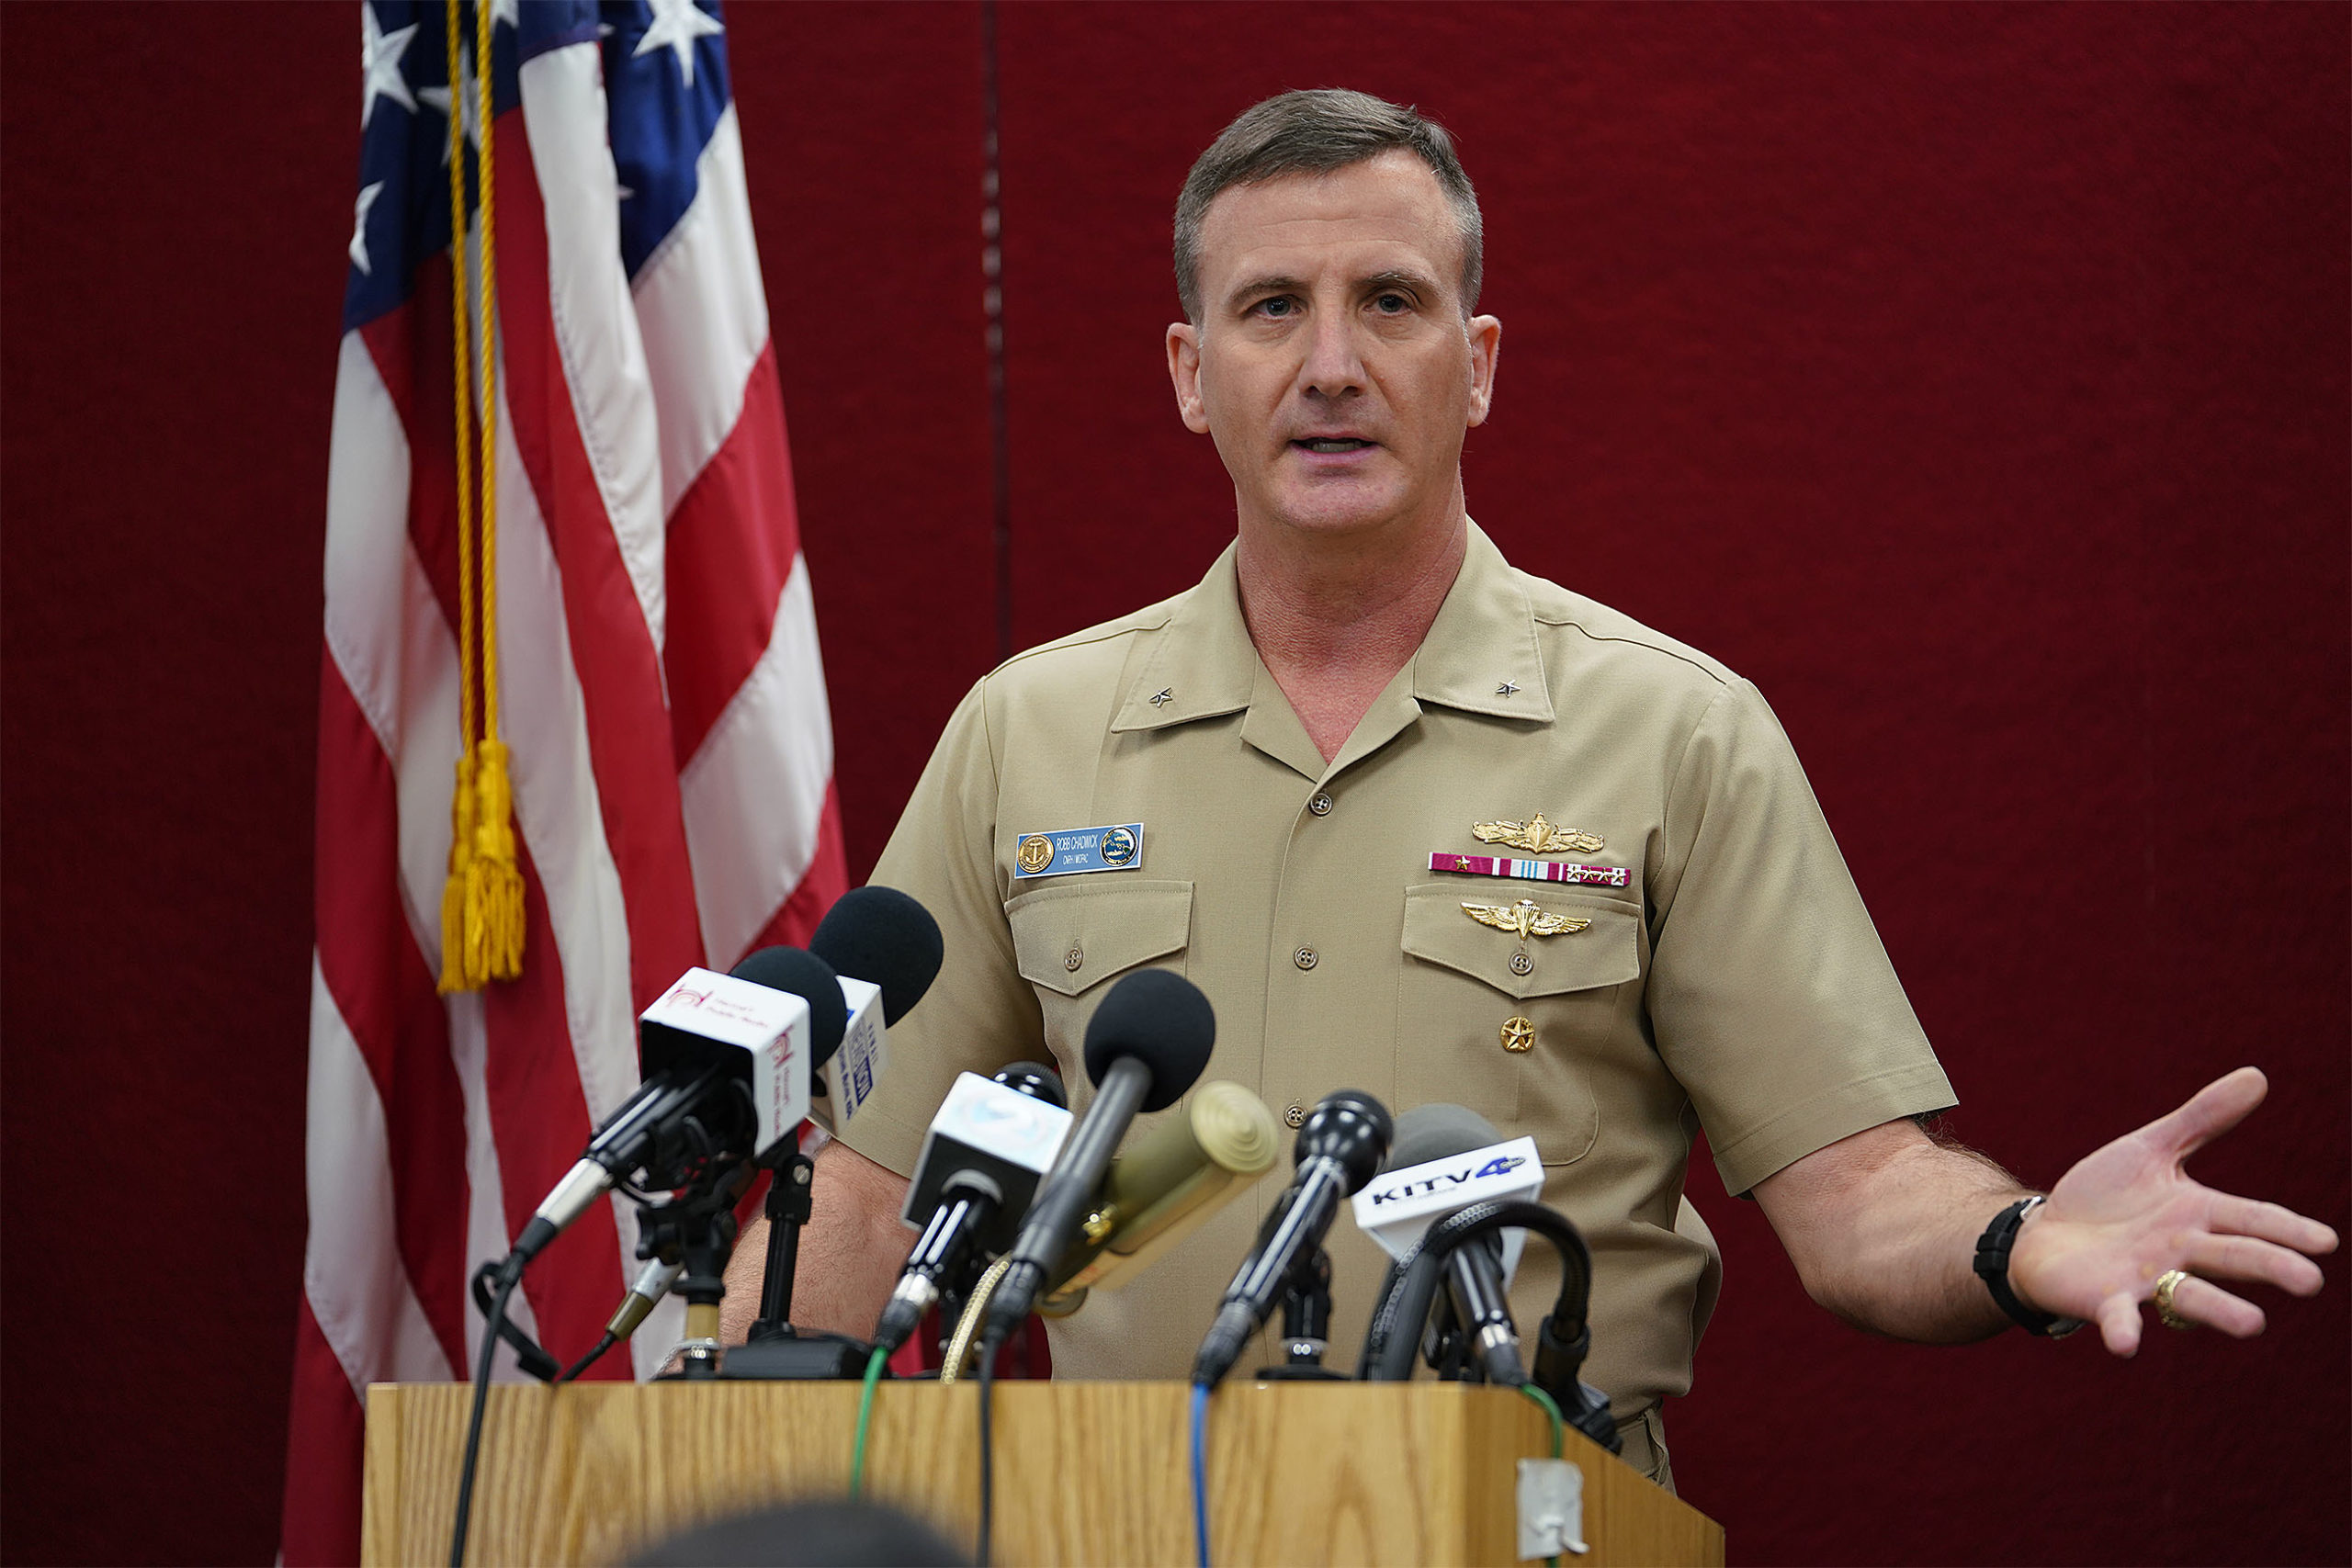 US Navy Rear Admiral Robert Chadwick addressed 2 questions and press conference was over.